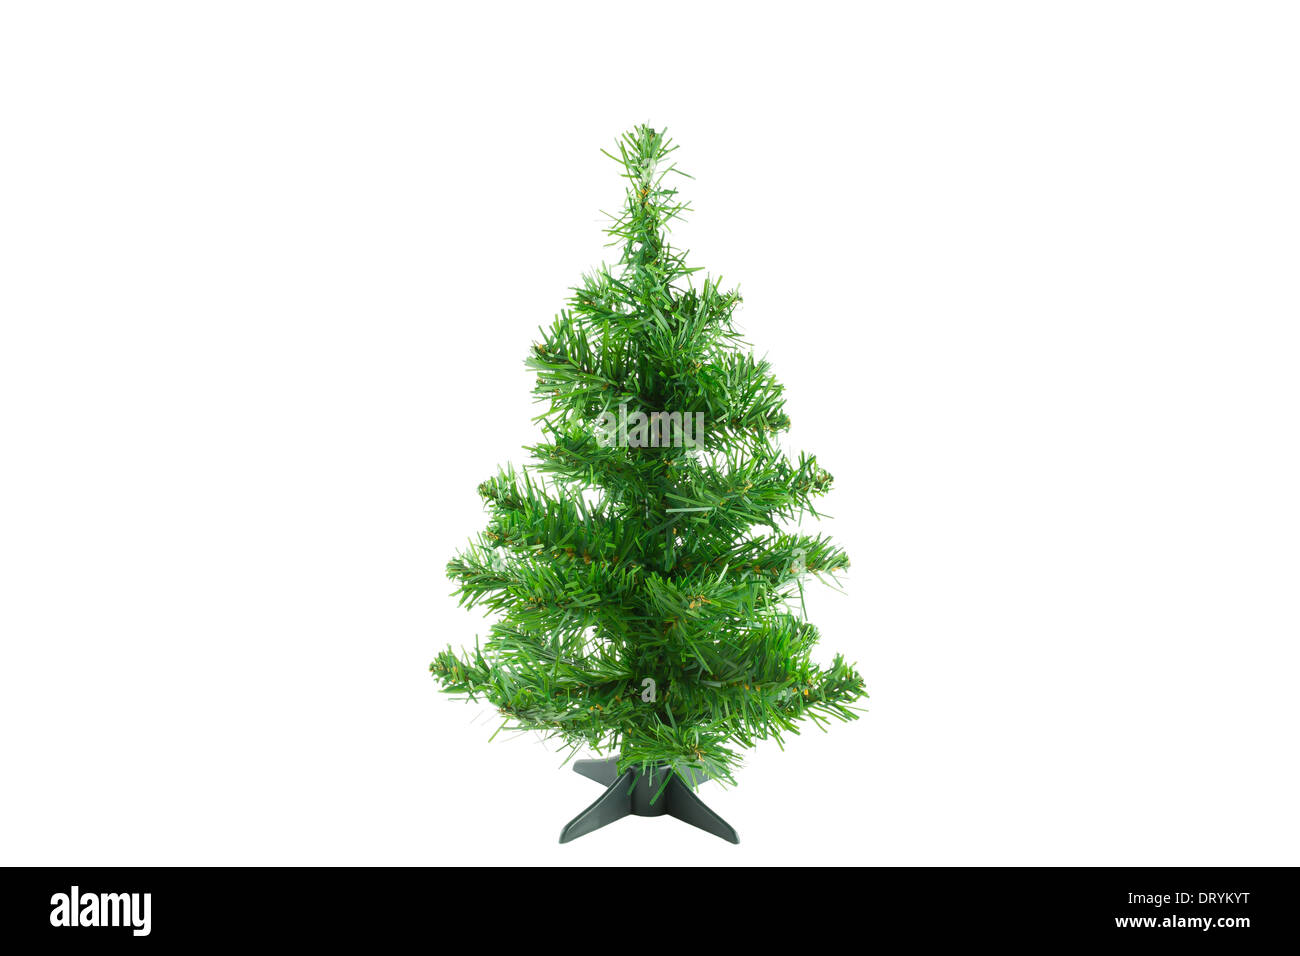 Original Christmas tree on white background. Christmas tree for decoration. - Stock Image